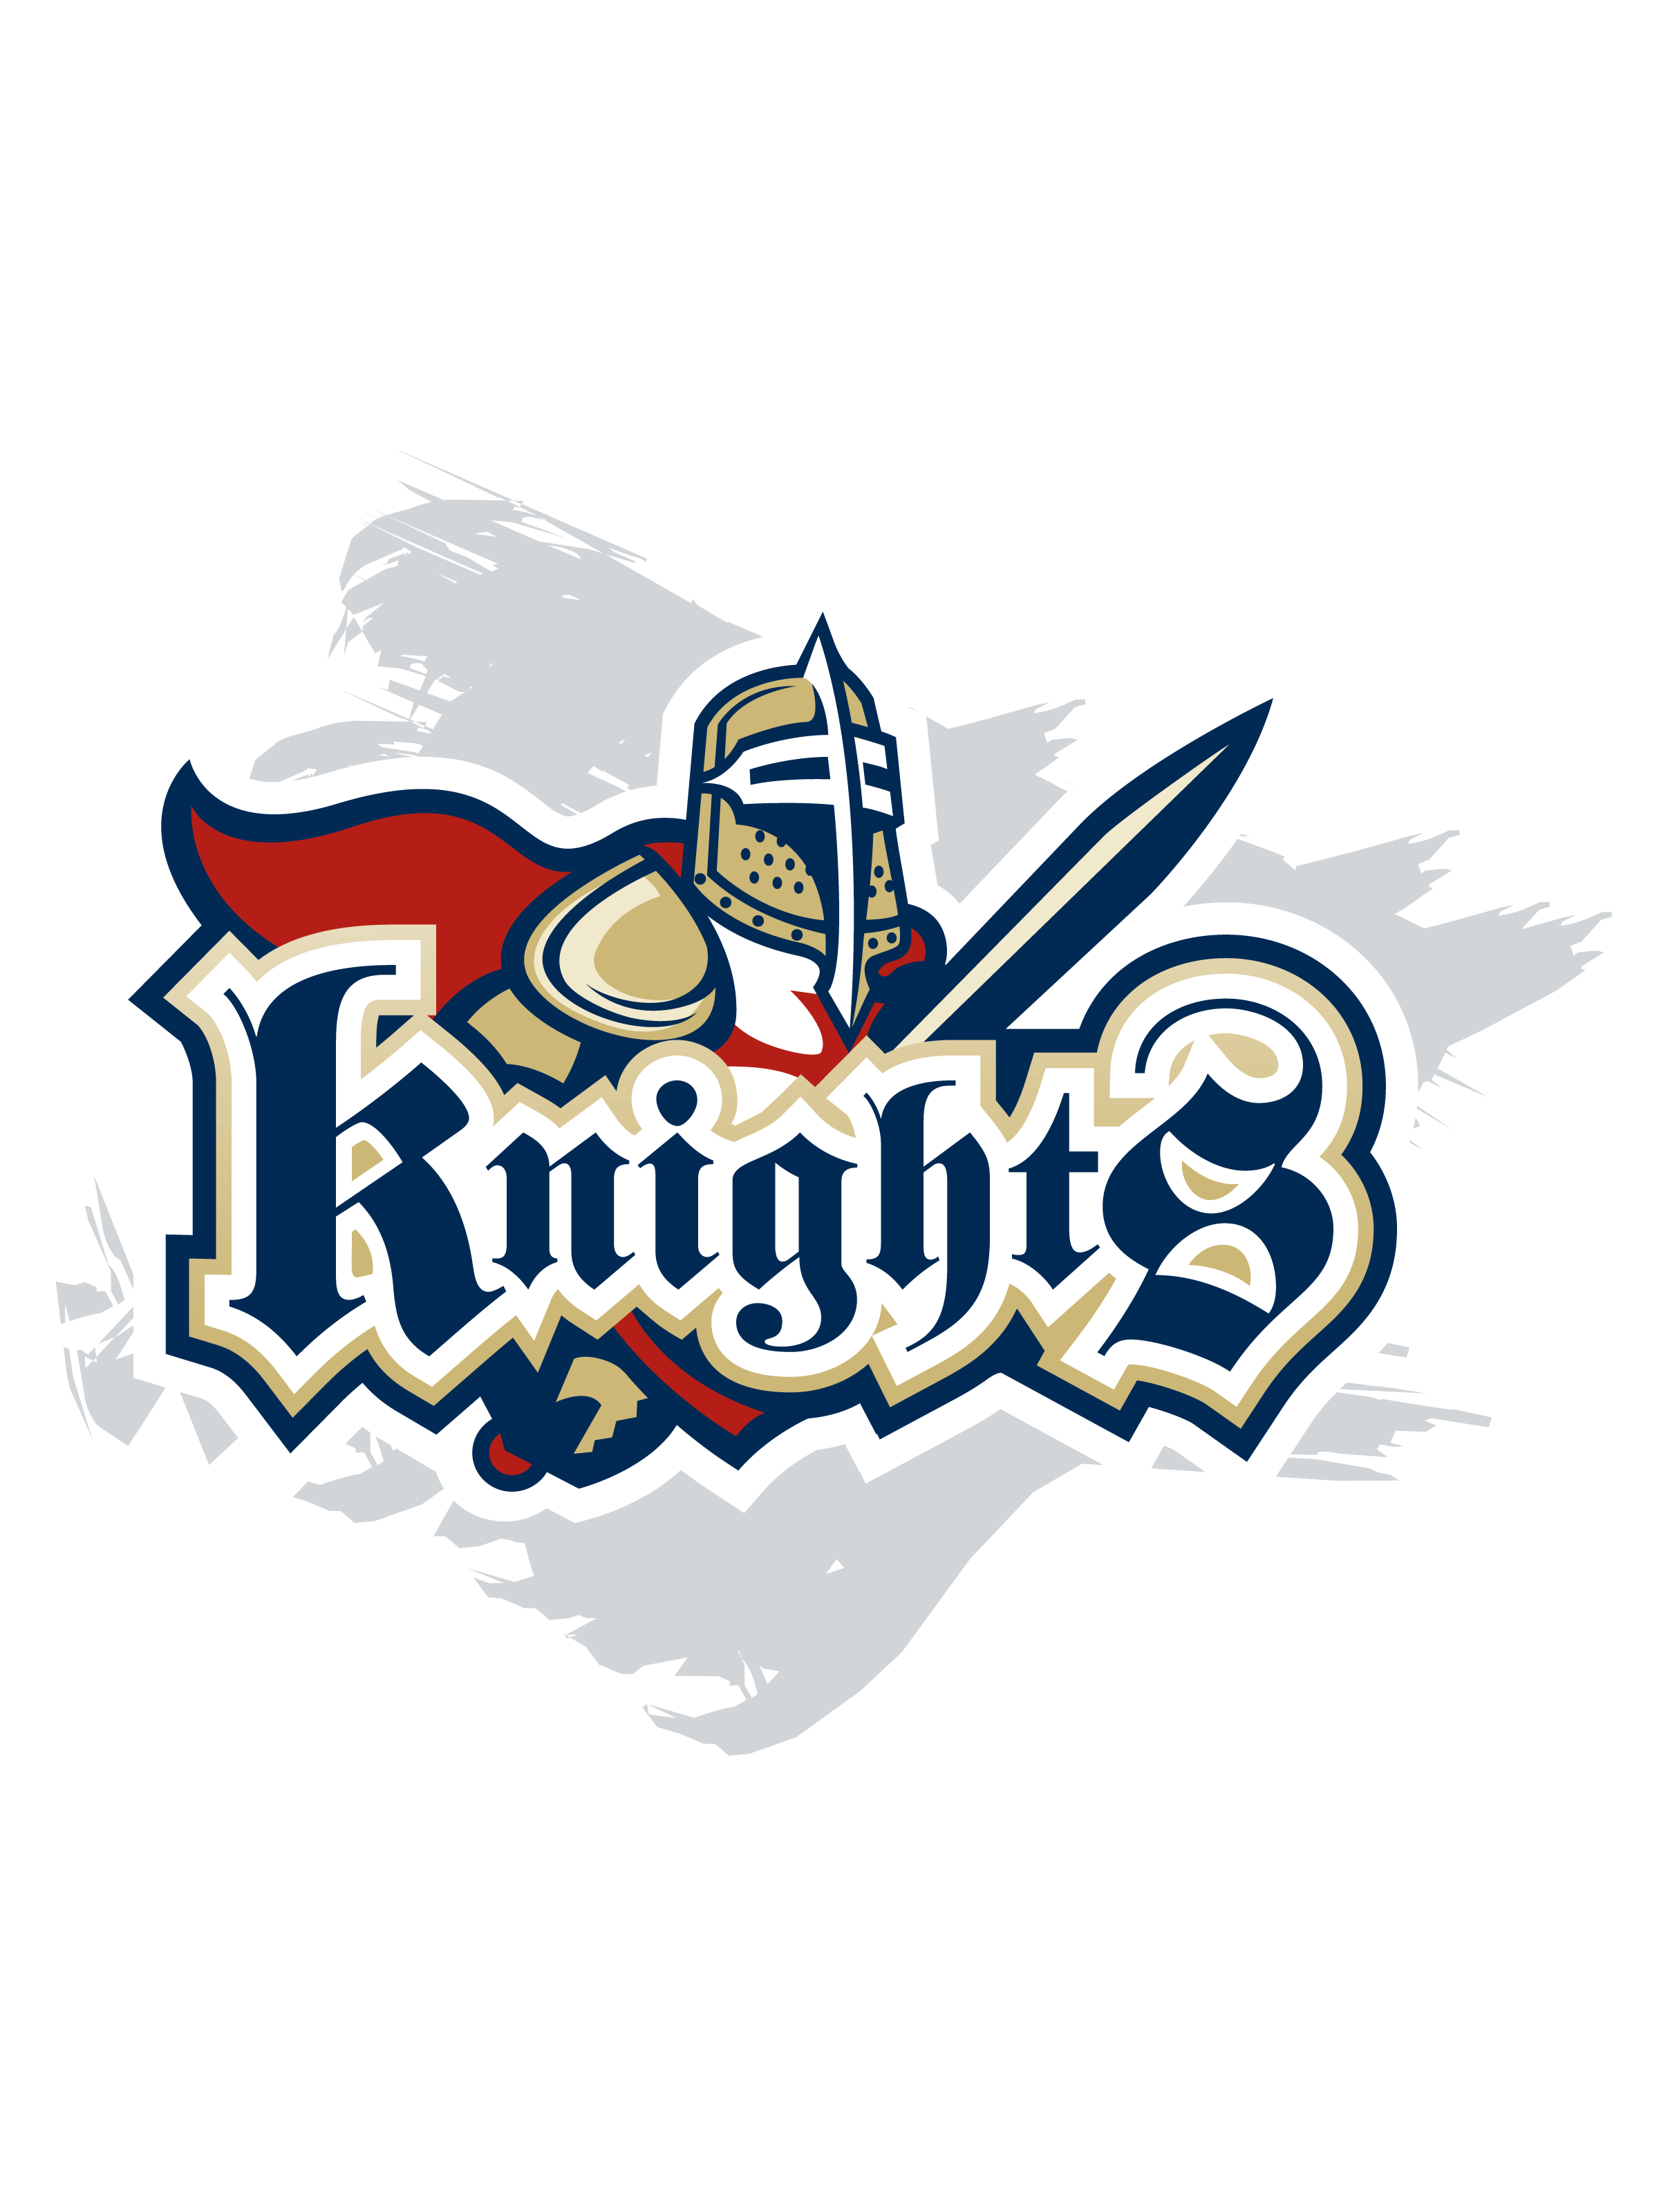 Knight clipart strong. Knights logo pinterest and